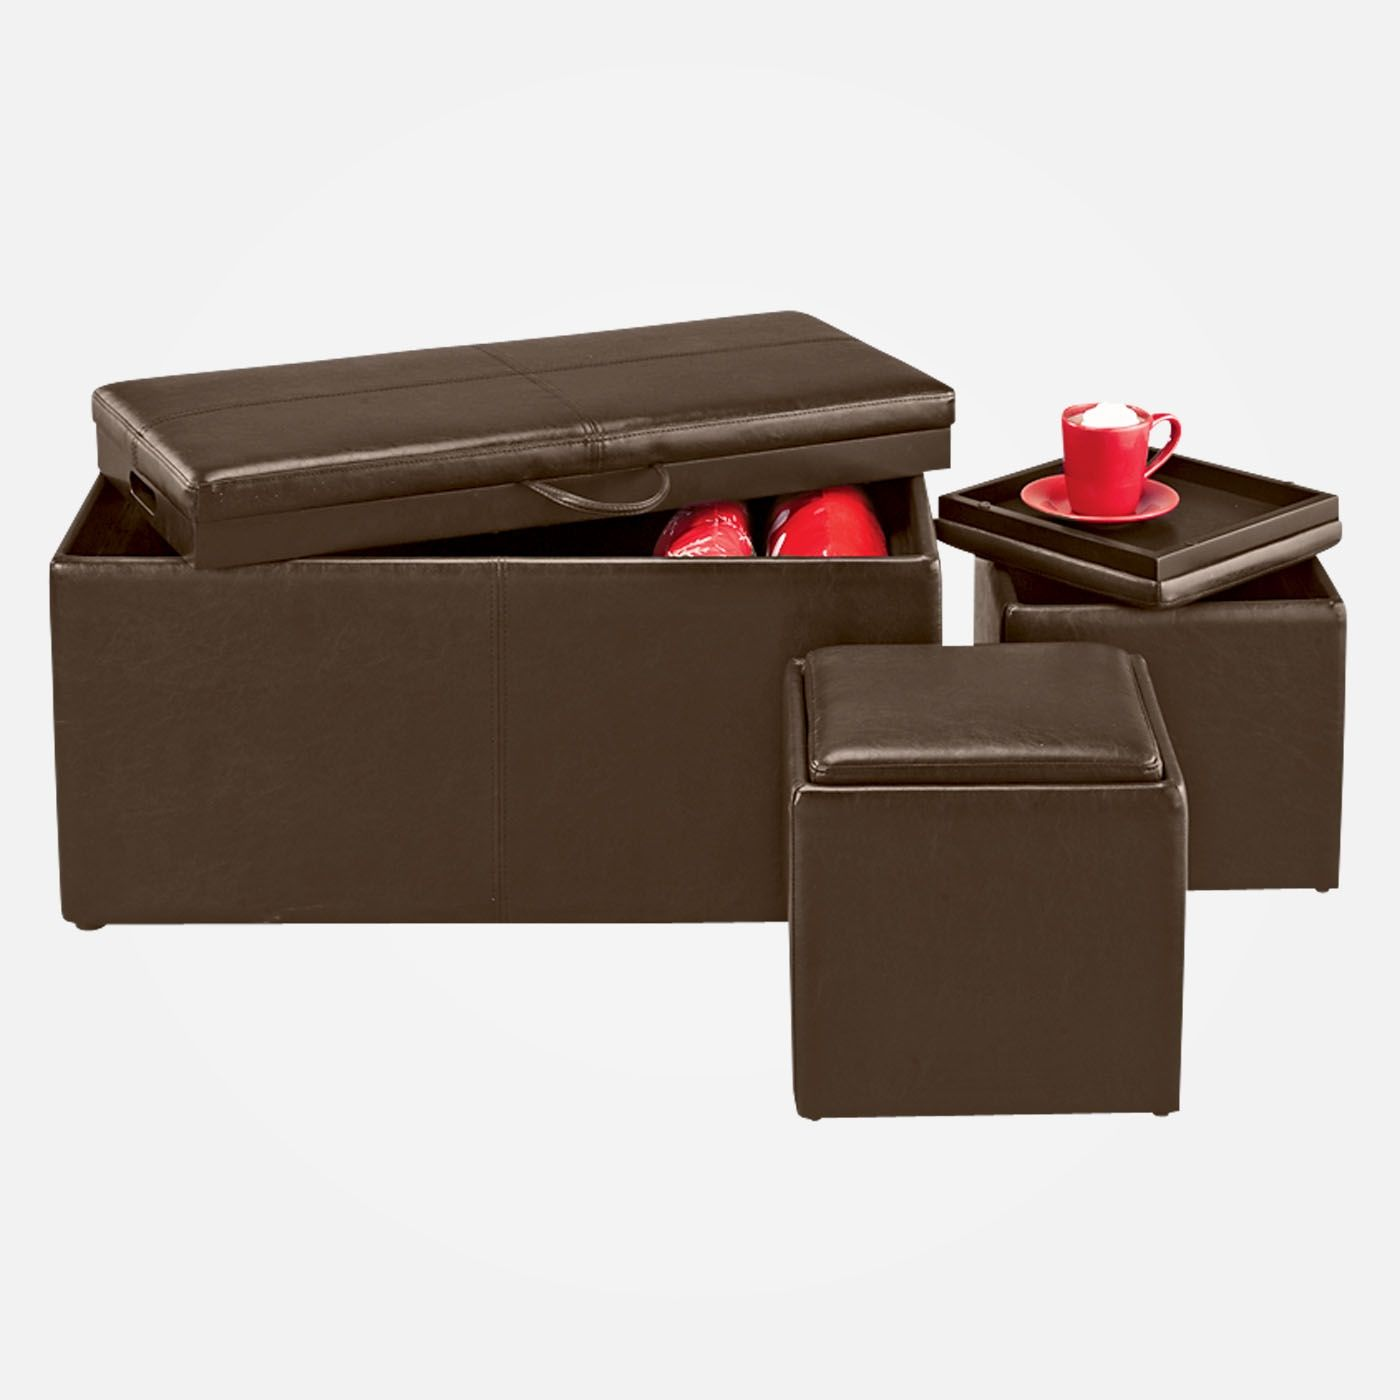 Ottoman Storage Set At Shopko On Sale For 125 Storage Ottoman Storage Ottoman Set